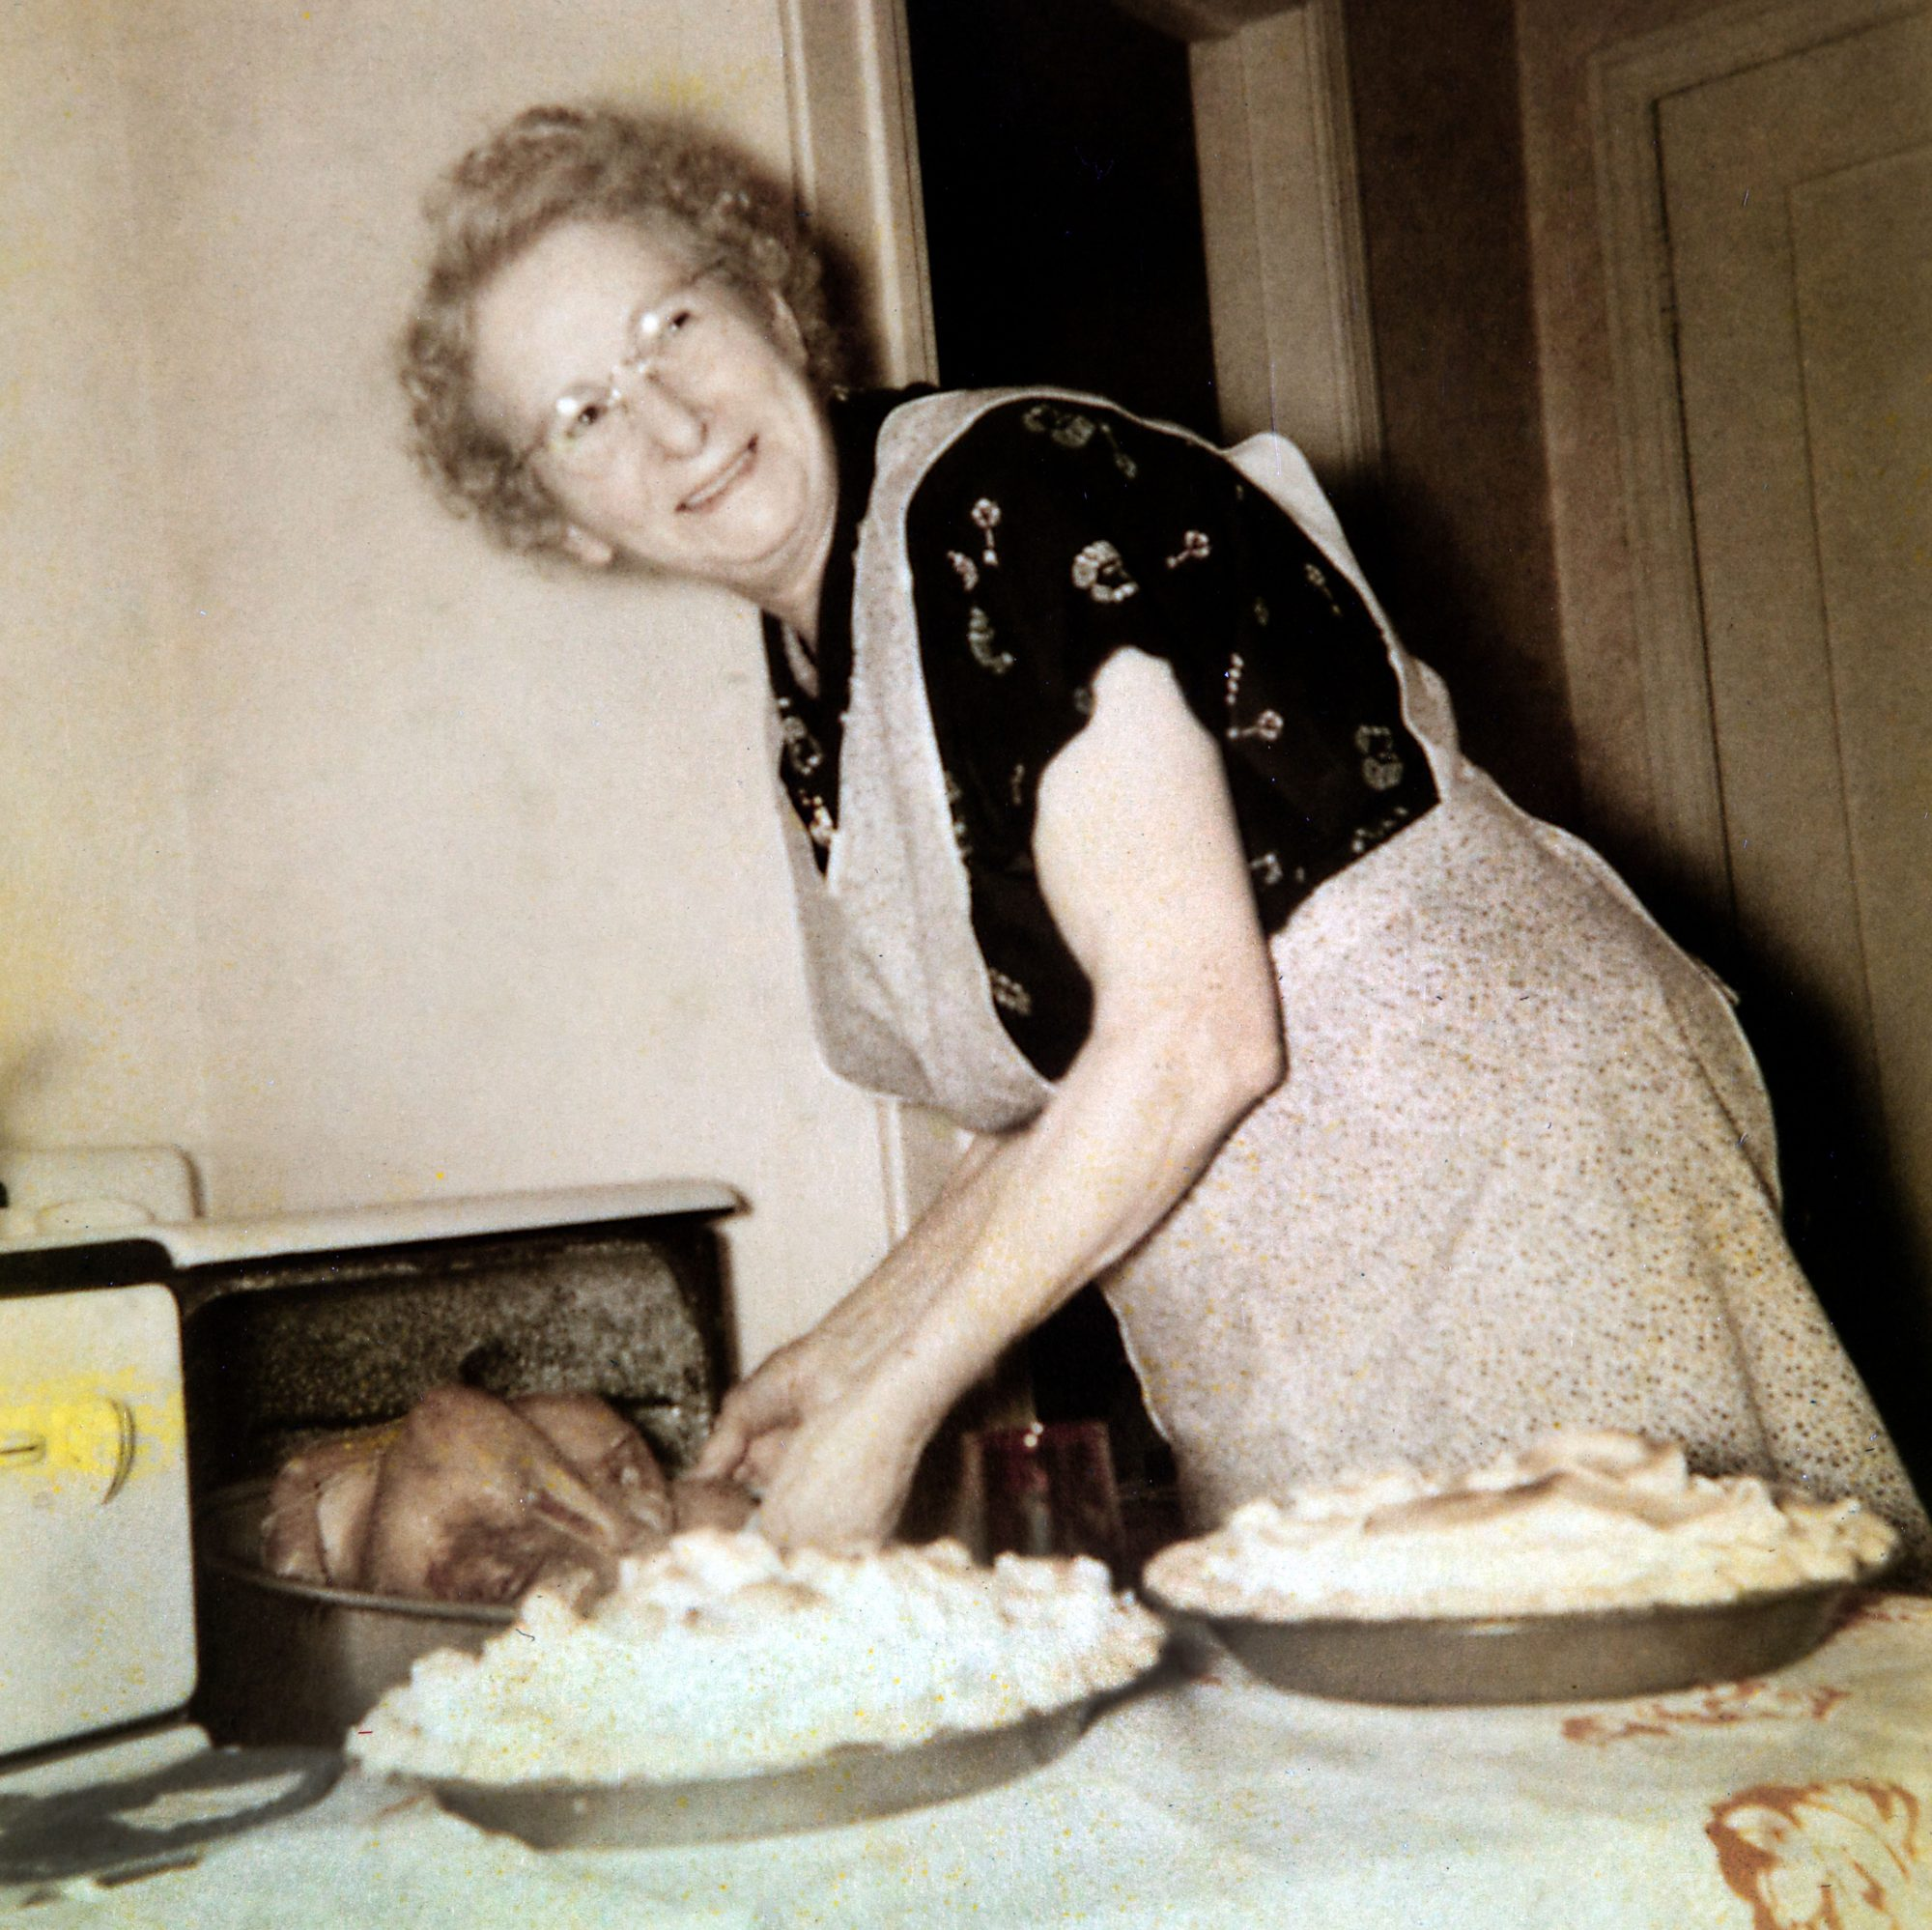 grandmother cooking turkey